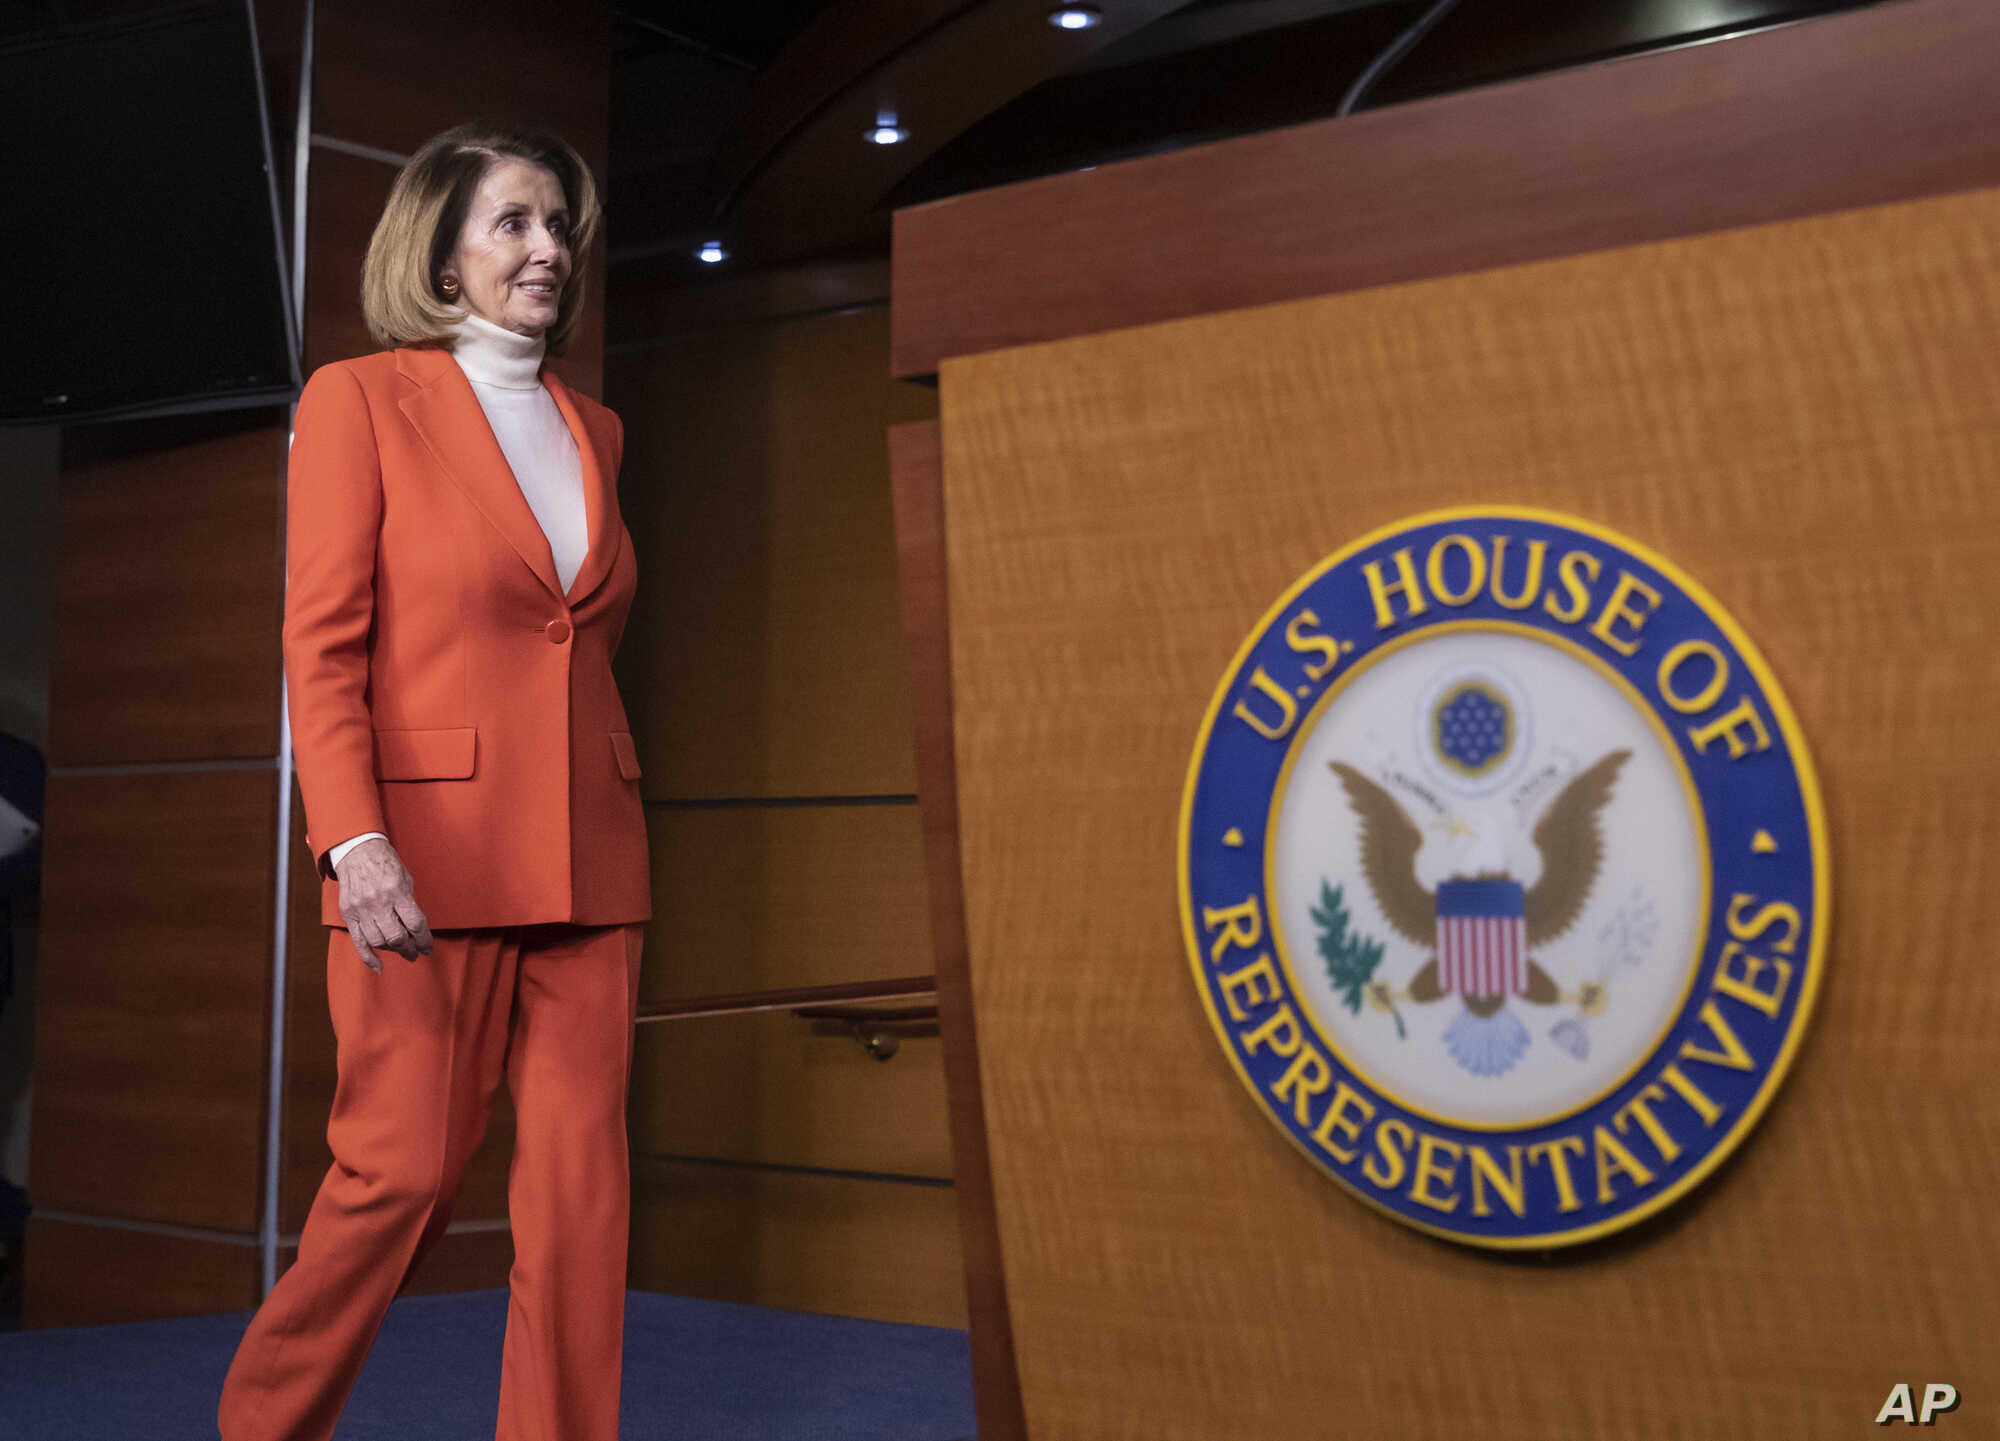 House Minority Leader Nancy Pelosi, D-Calif., arrives to face reporters at a news conference at the Capitol in Washington, Thursday, Nov. 15, 2018.